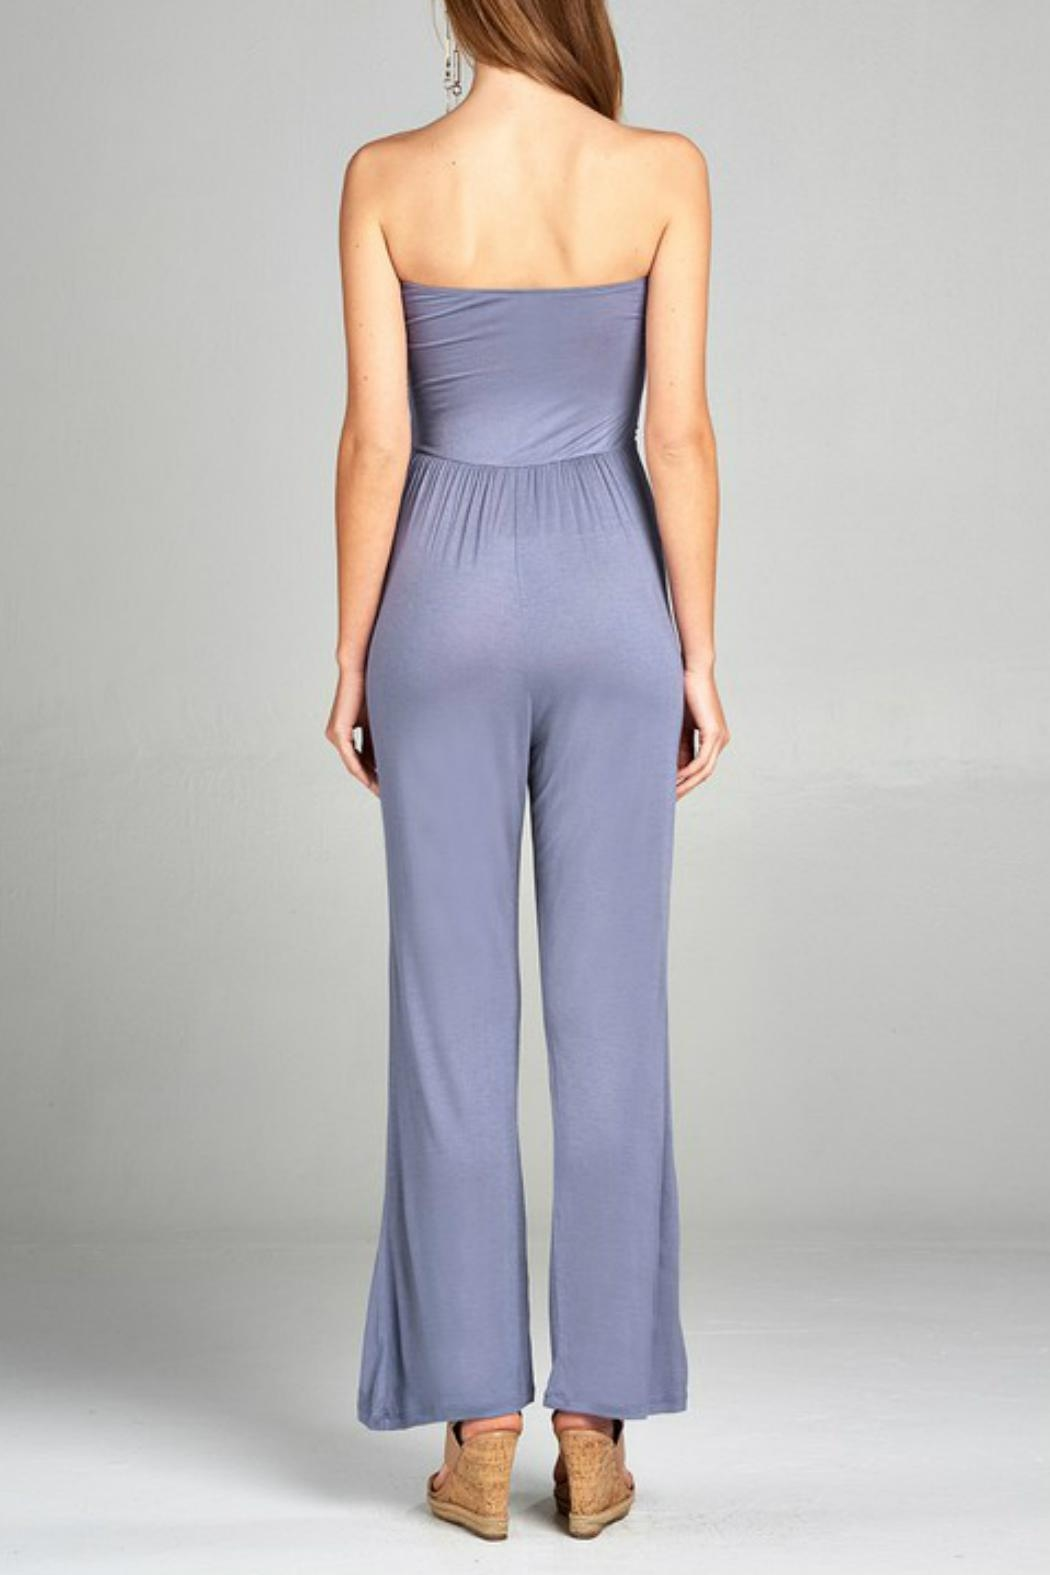 Minx Strapless Wideleg Jumpsuit - Front Full Image